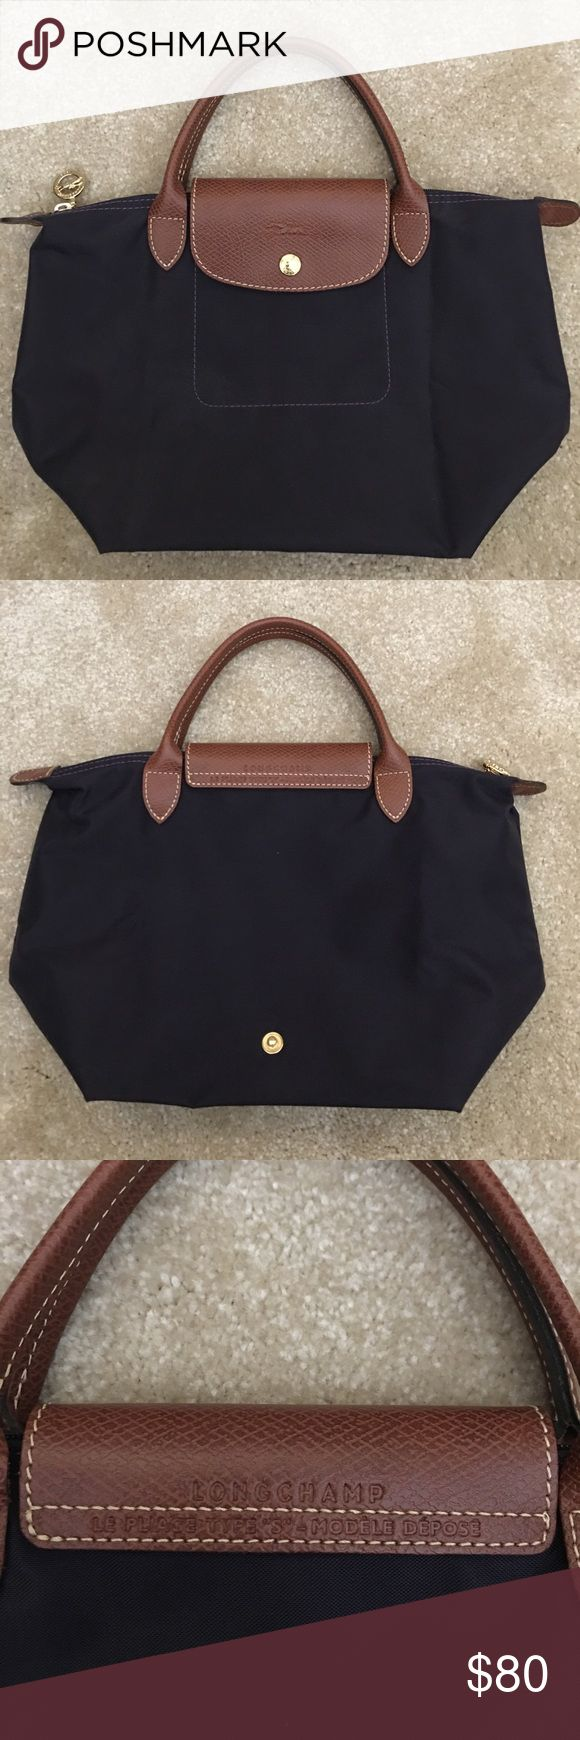 Authentic Longchamp Le Pliage. Size S handle bag. Bilberry color (deep purple/blue) Used only a few times. Purchase from Nordstrom. In great condition, very clean. Will ship with price tag. Longchamp Bags Satchels